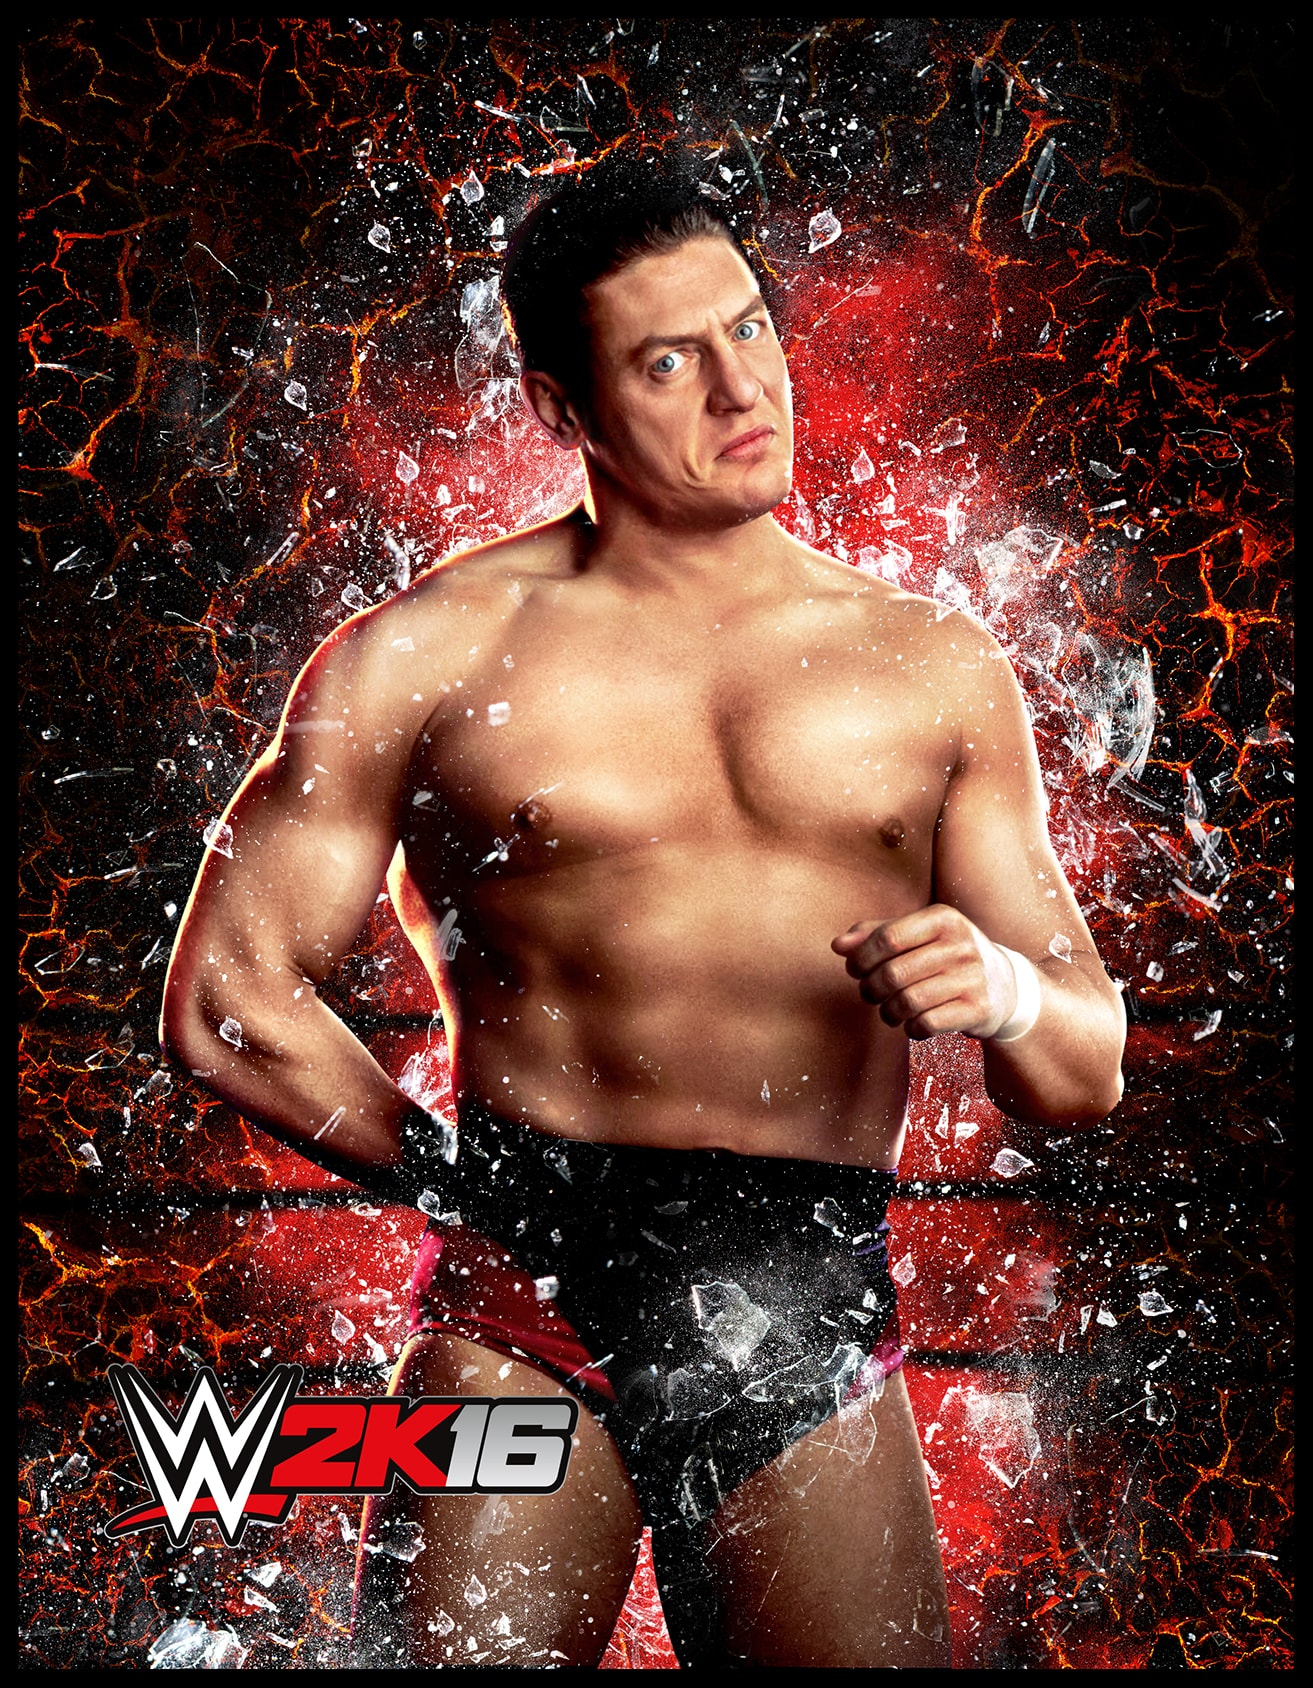 22 New Roster Additions Revealed For WWE 2K16 - Next Gen Base